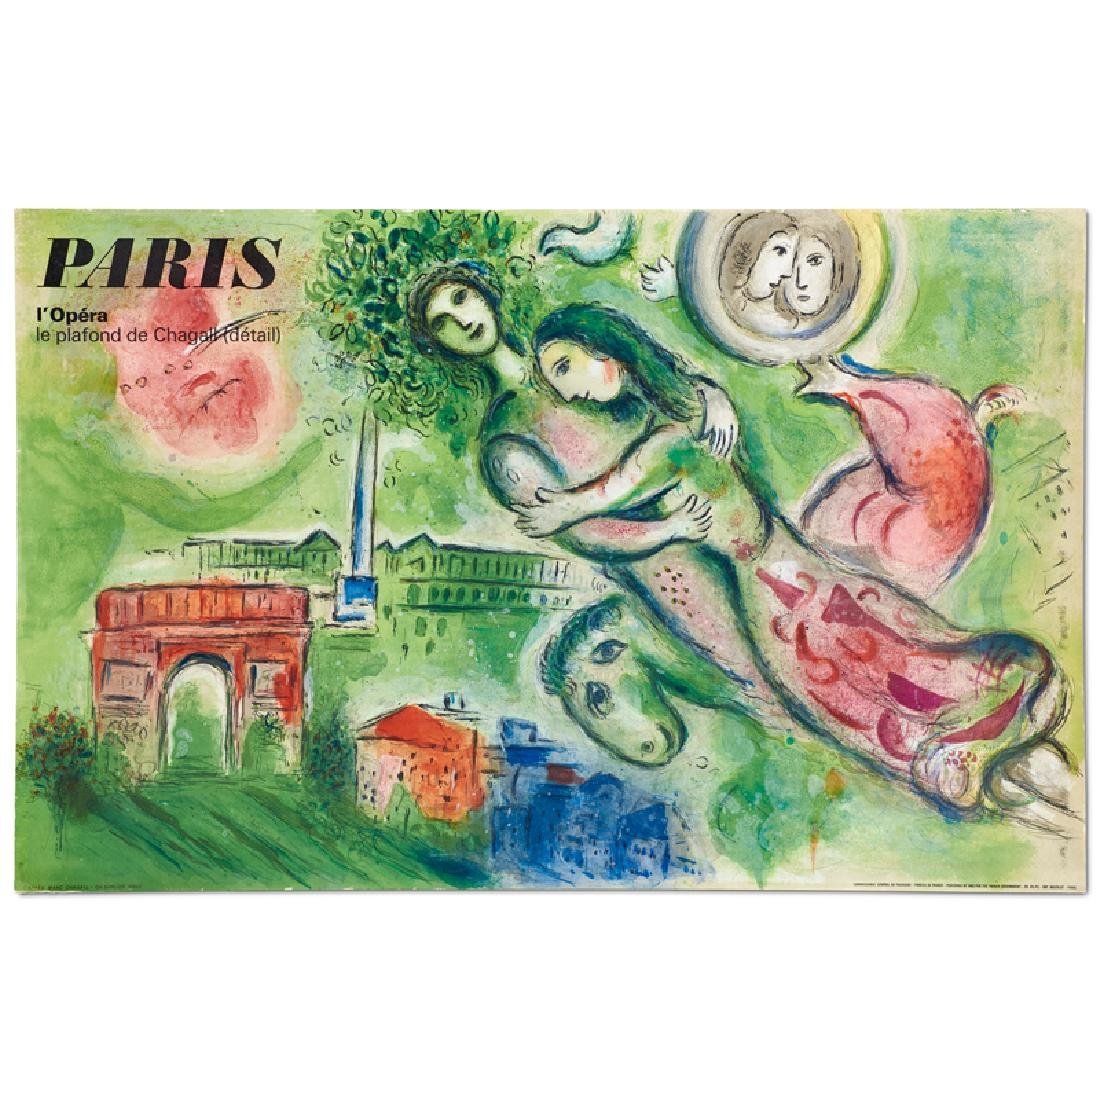 AFTER MARC CHAGALL (French/Russian, 1887-1985)